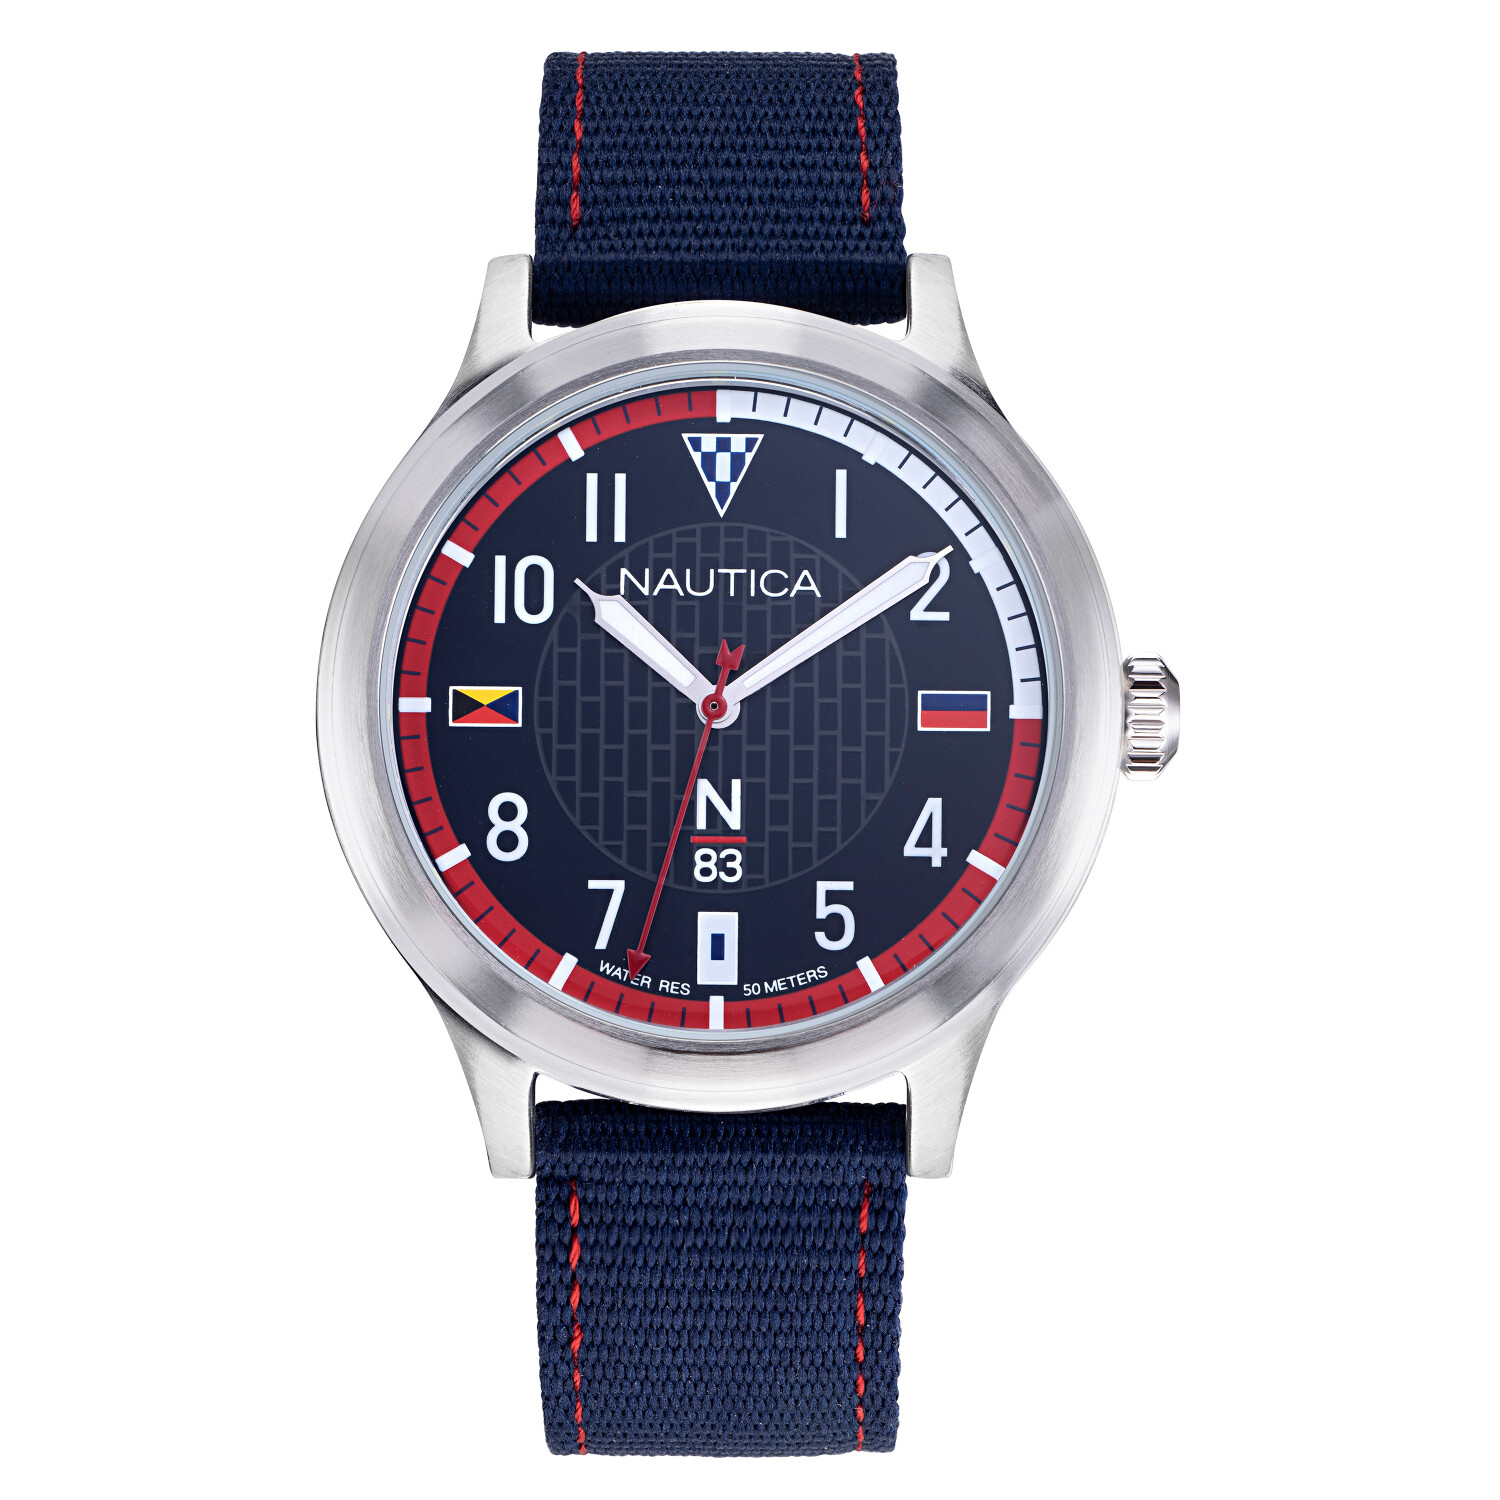 Nautica Watch NAPCFS910 Crissy Field, Analog, Water Resistant, Nylon Fabric Strap, Adjustable Buckle, Snap Down Crown, Blue